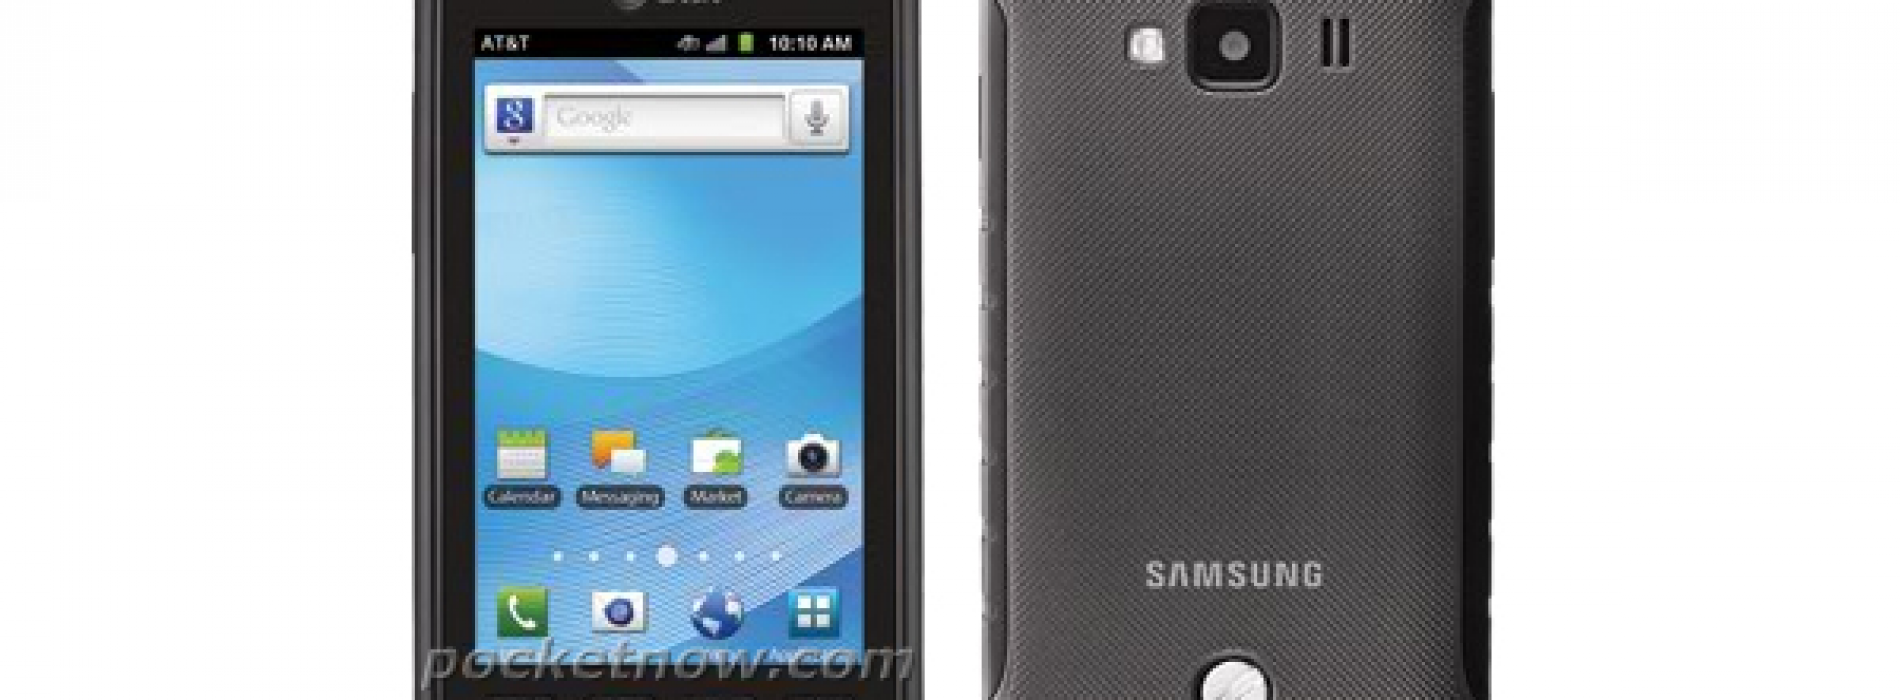 First look at AT&T's Samsung Rugby Smart